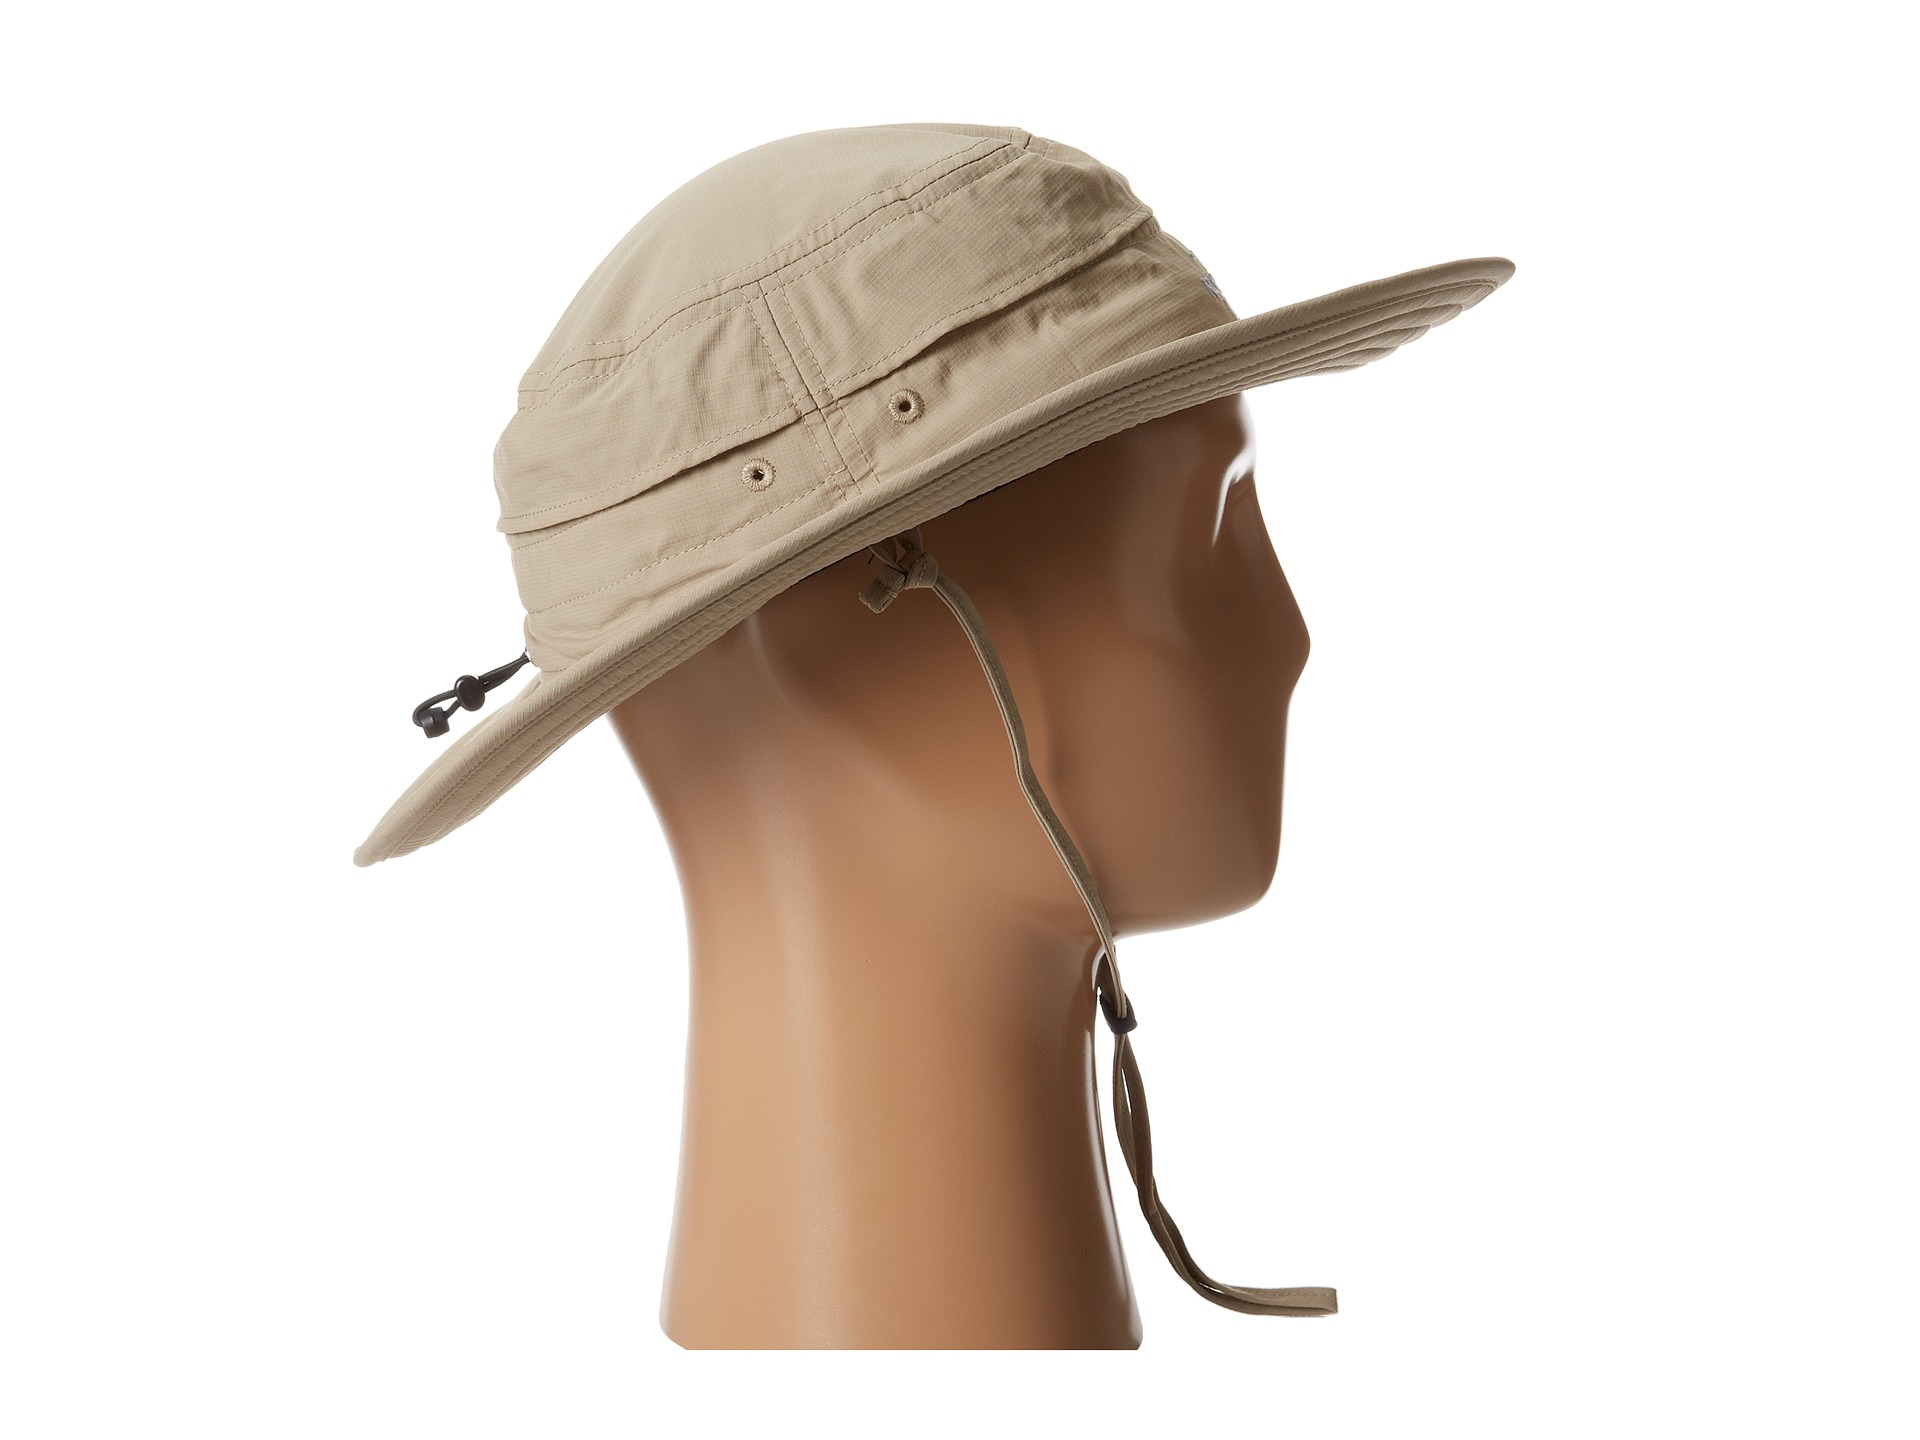 d1cc6c80772 Lyst - The North Face Horizon Breeze Brimmer Hat in Natural for Men